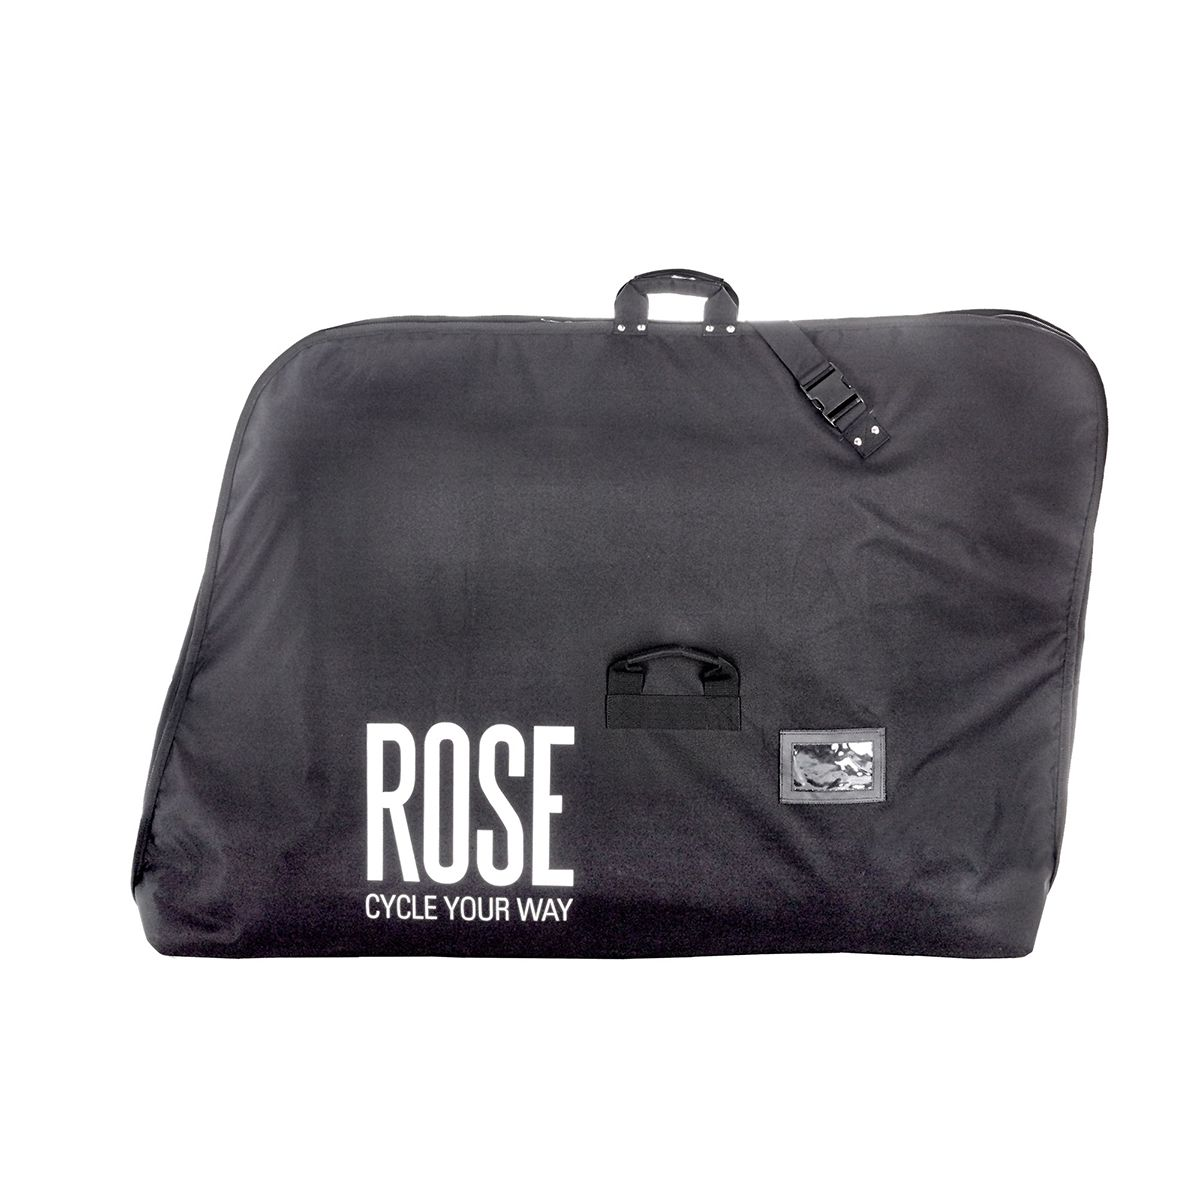 ROSE CONTAINERBAG PRO transport bag | Cykelkuffert